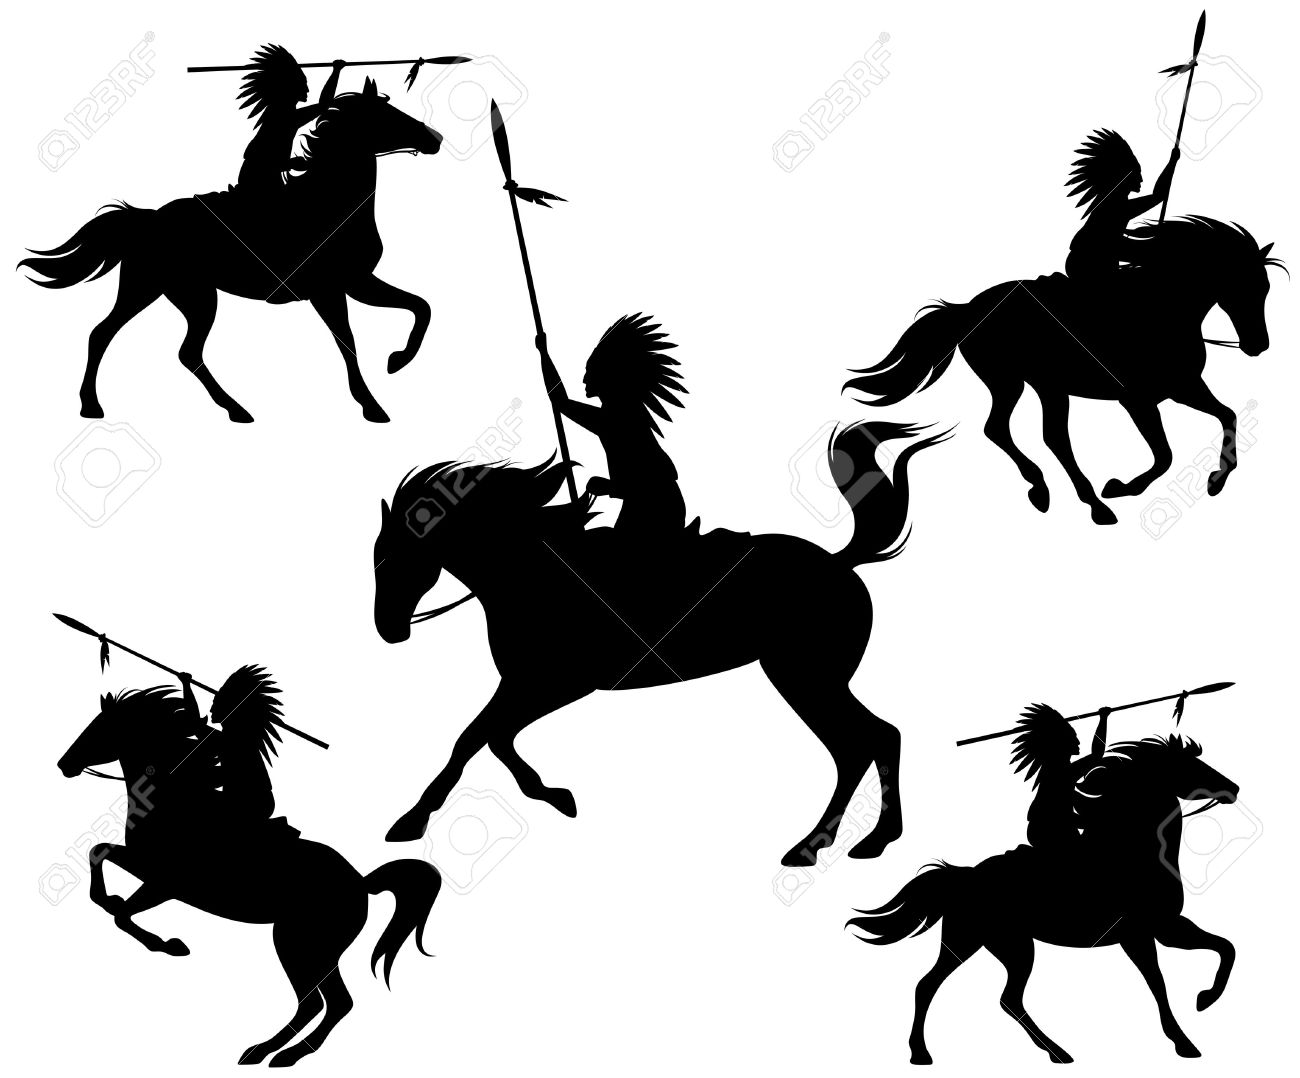 Native Americans Clipart Black And White wild west silhouettes - native